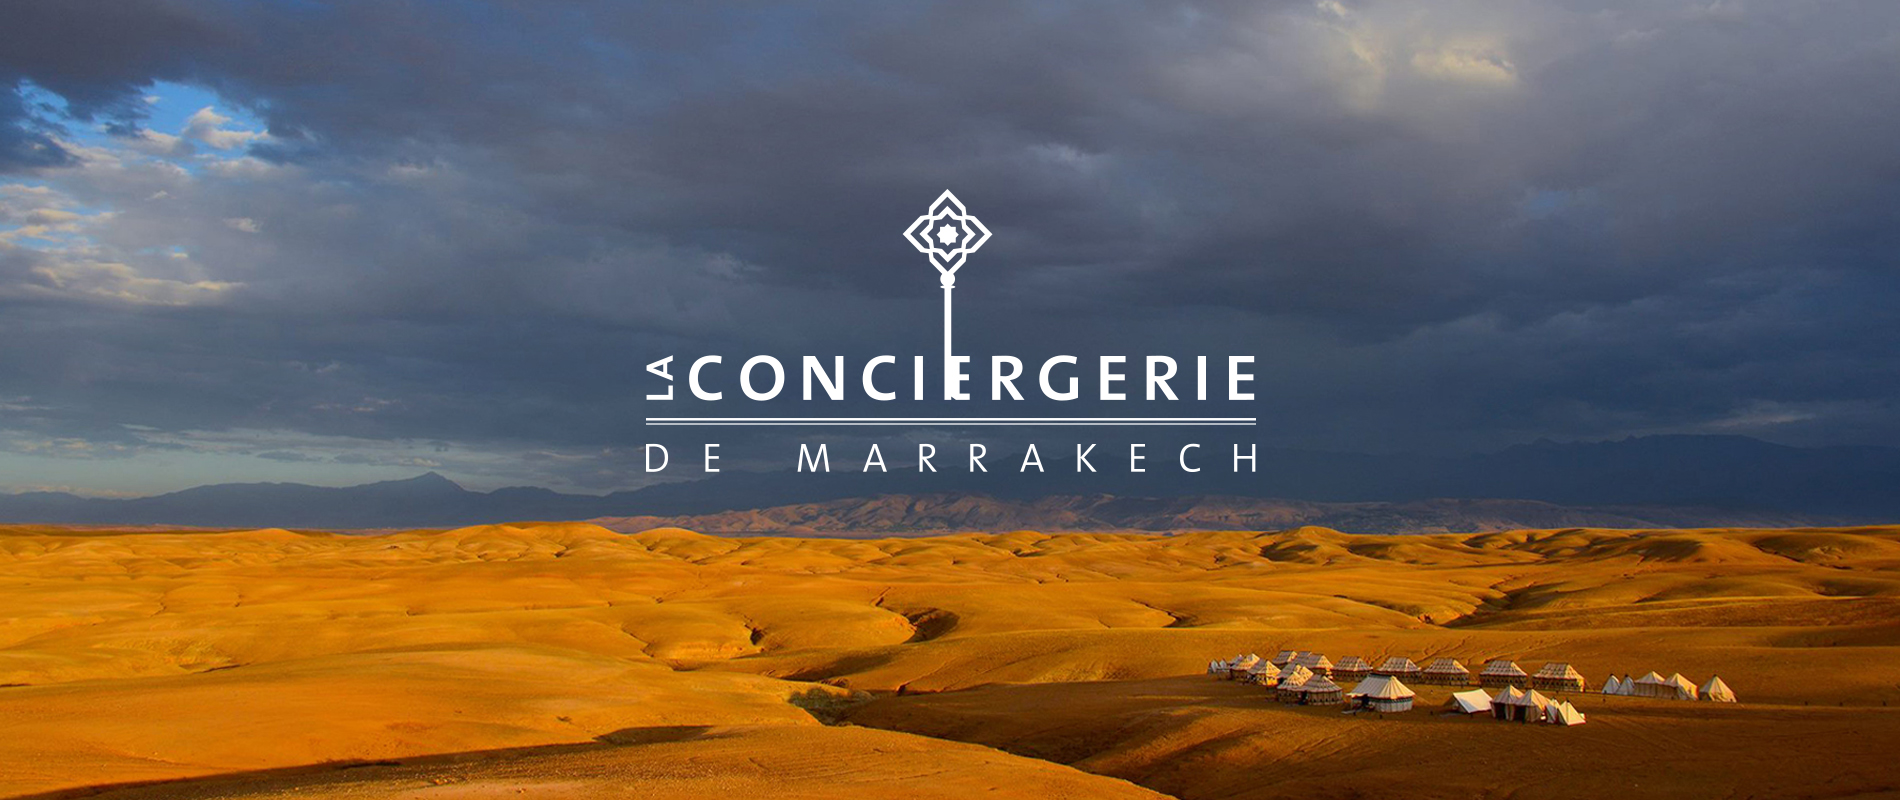 Marrackech EN